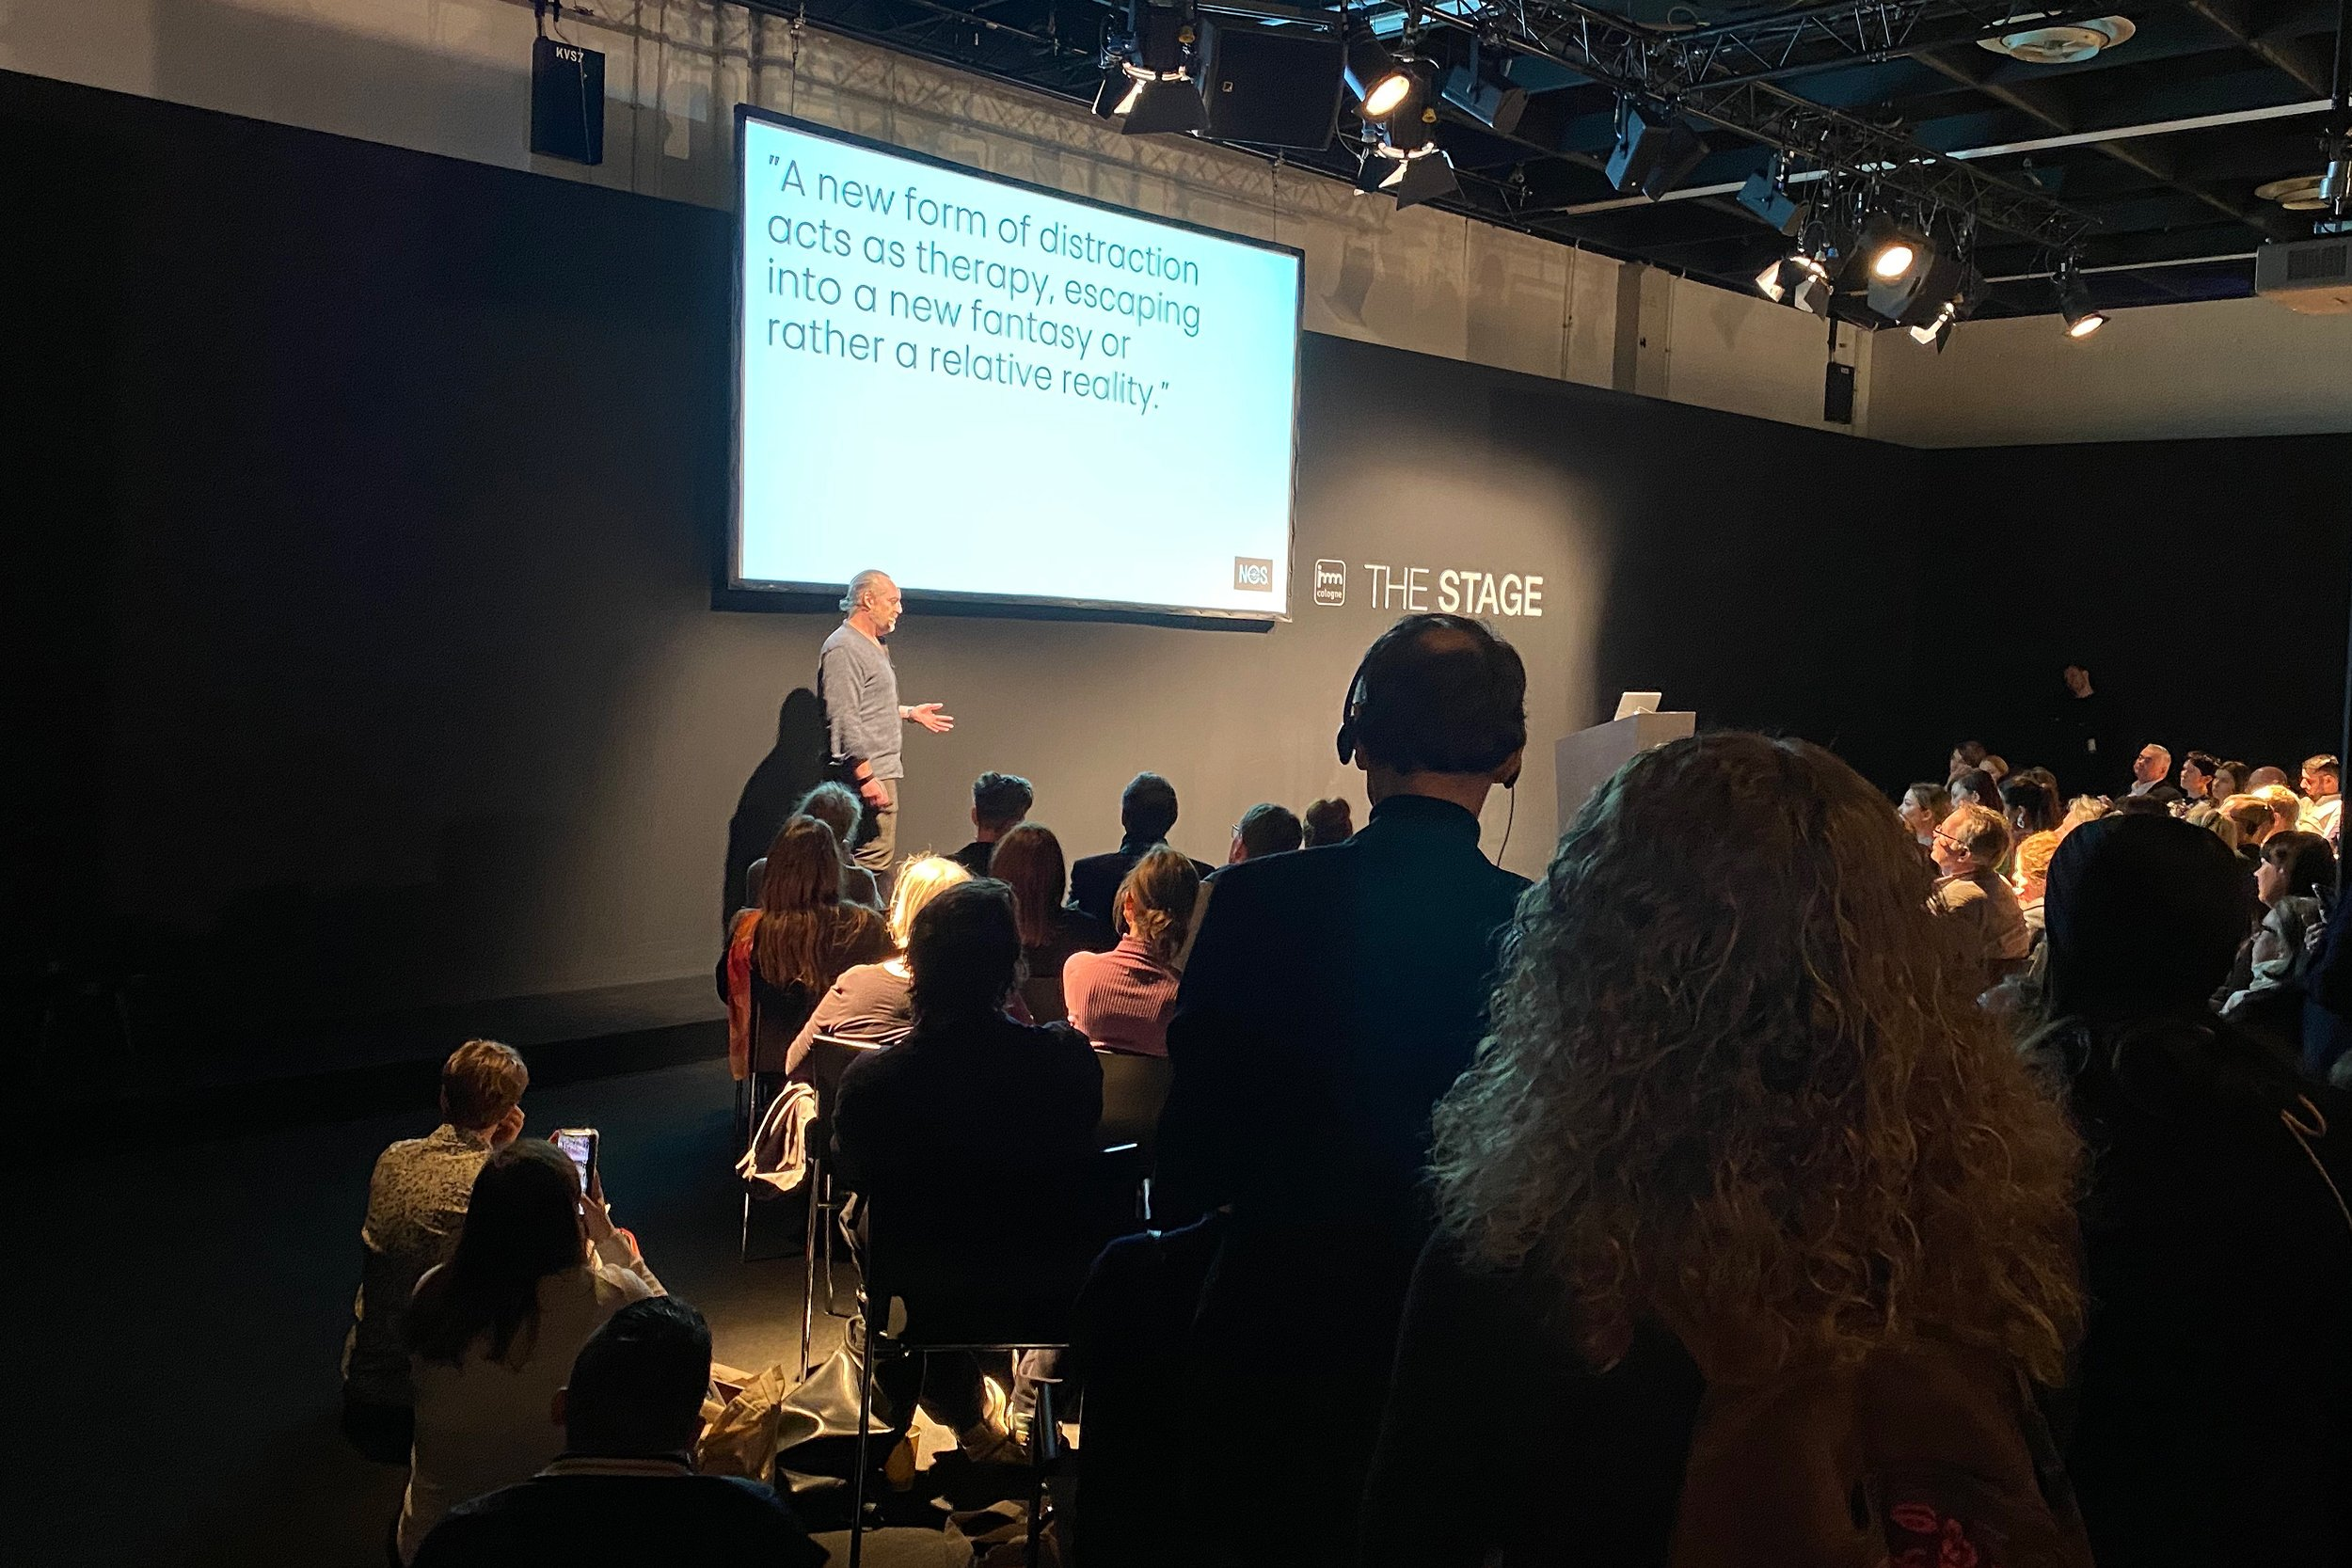 https://farconsulting.de/wp-content/uploads/2020/03/05_The-Stage-2020.jpg